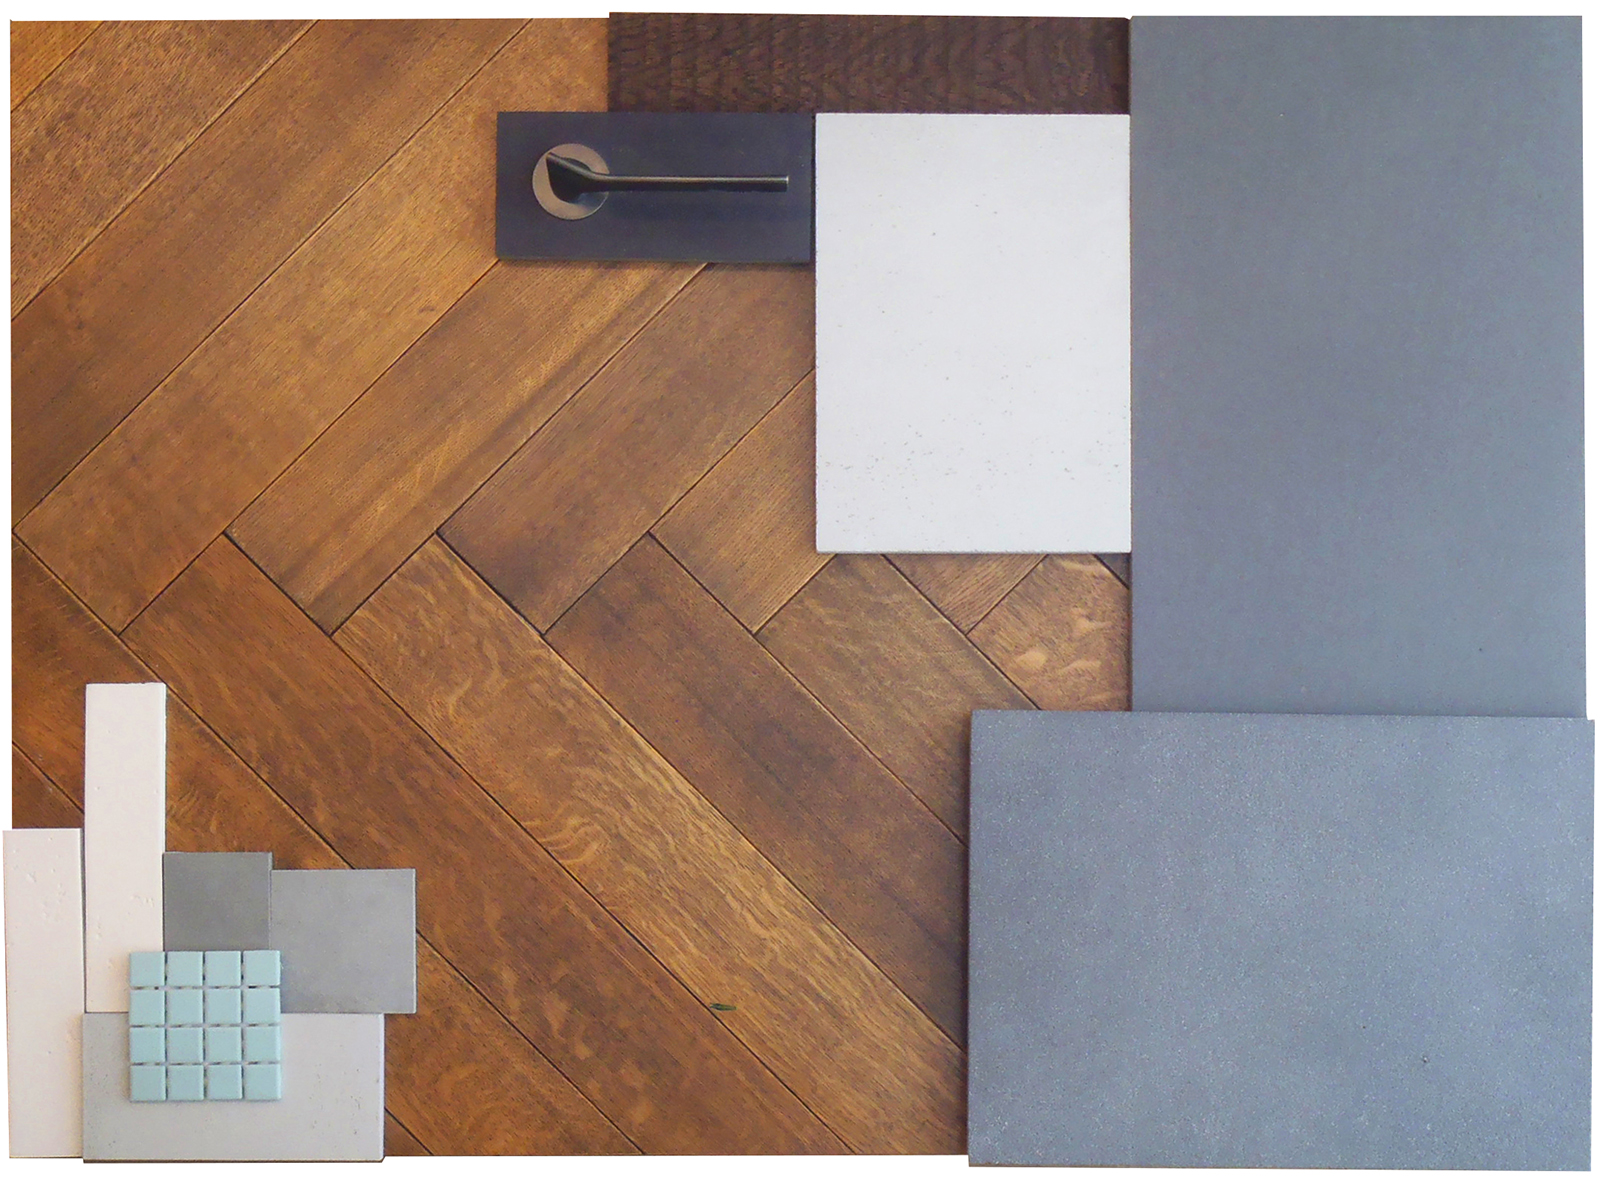 Marylebone Penthouse, Material sample board